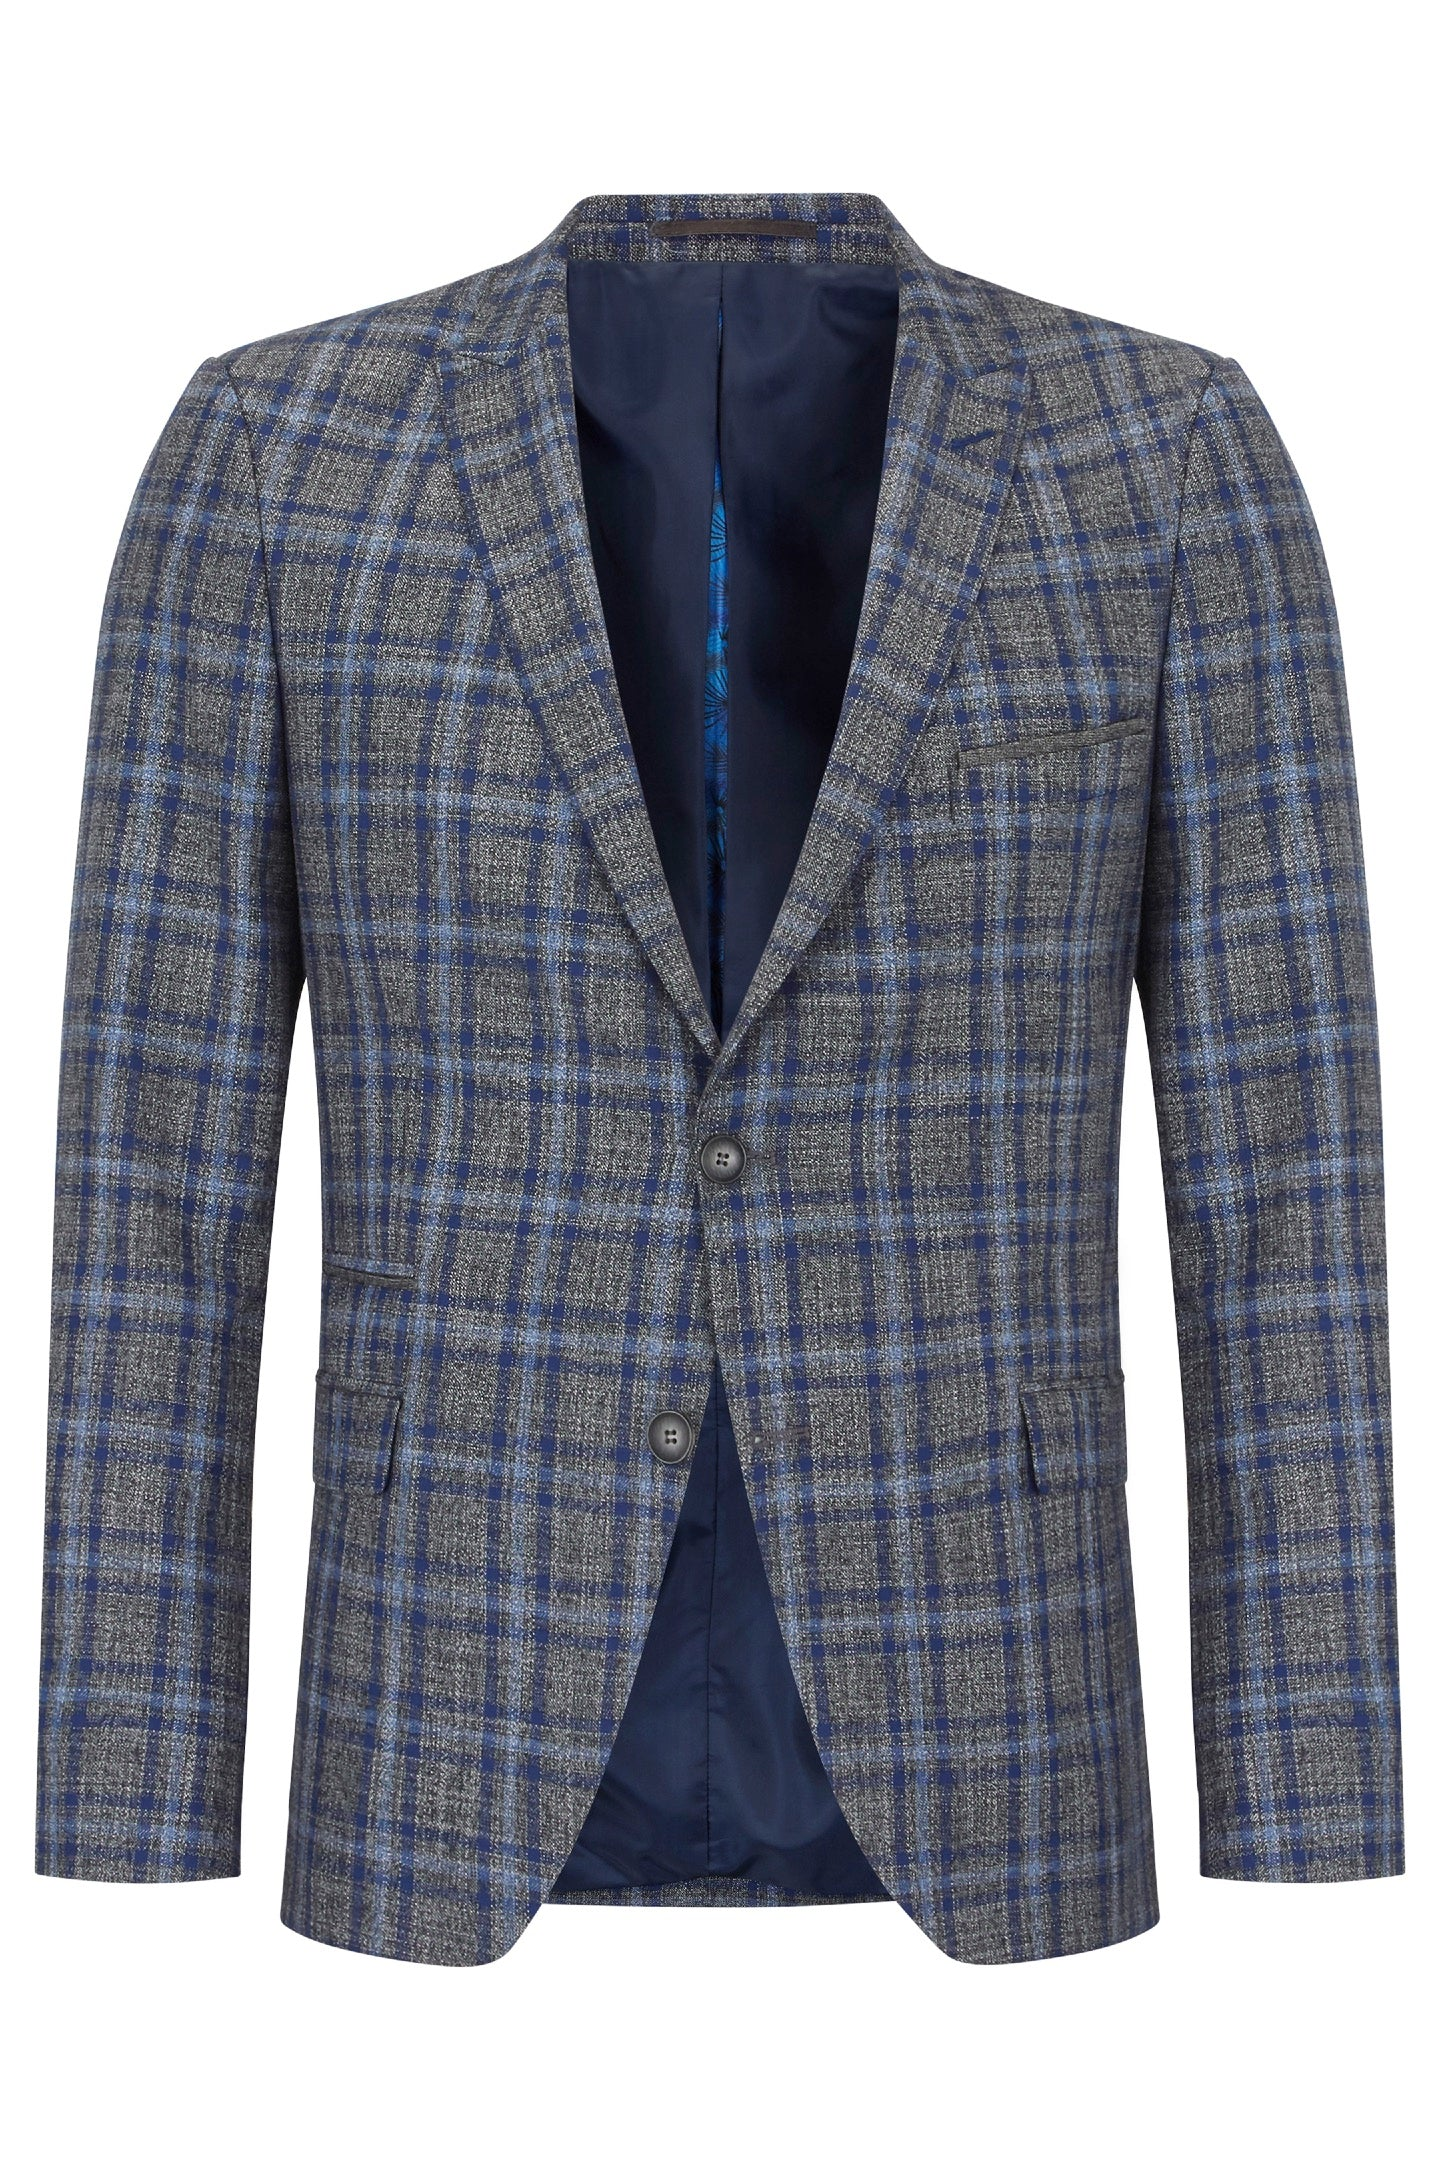 Errol Grey Blazer